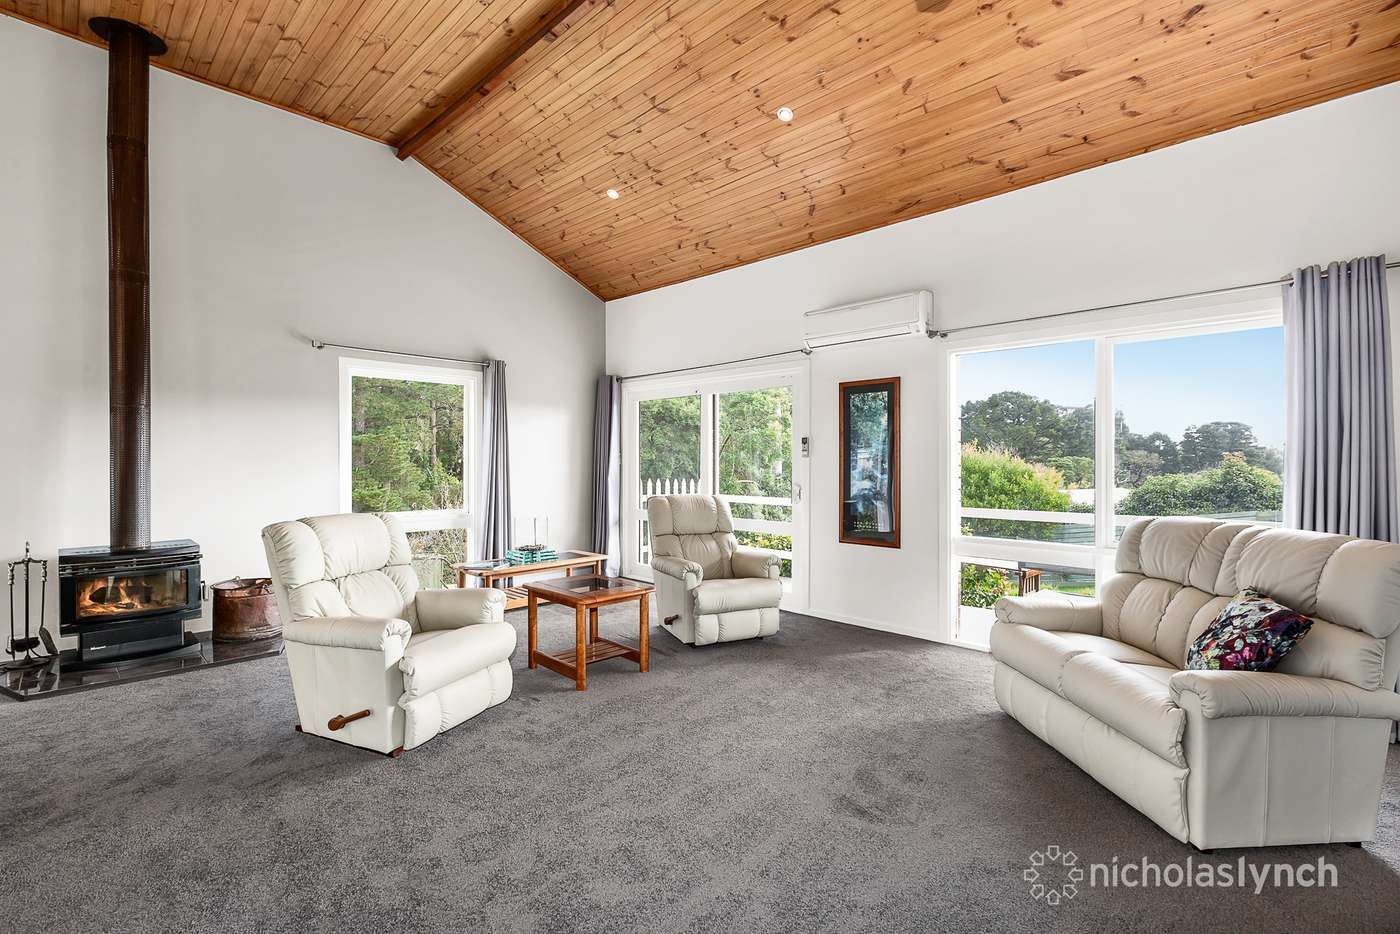 Fifth view of Homely house listing, 16 Brian Court, Mount Eliza VIC 3930